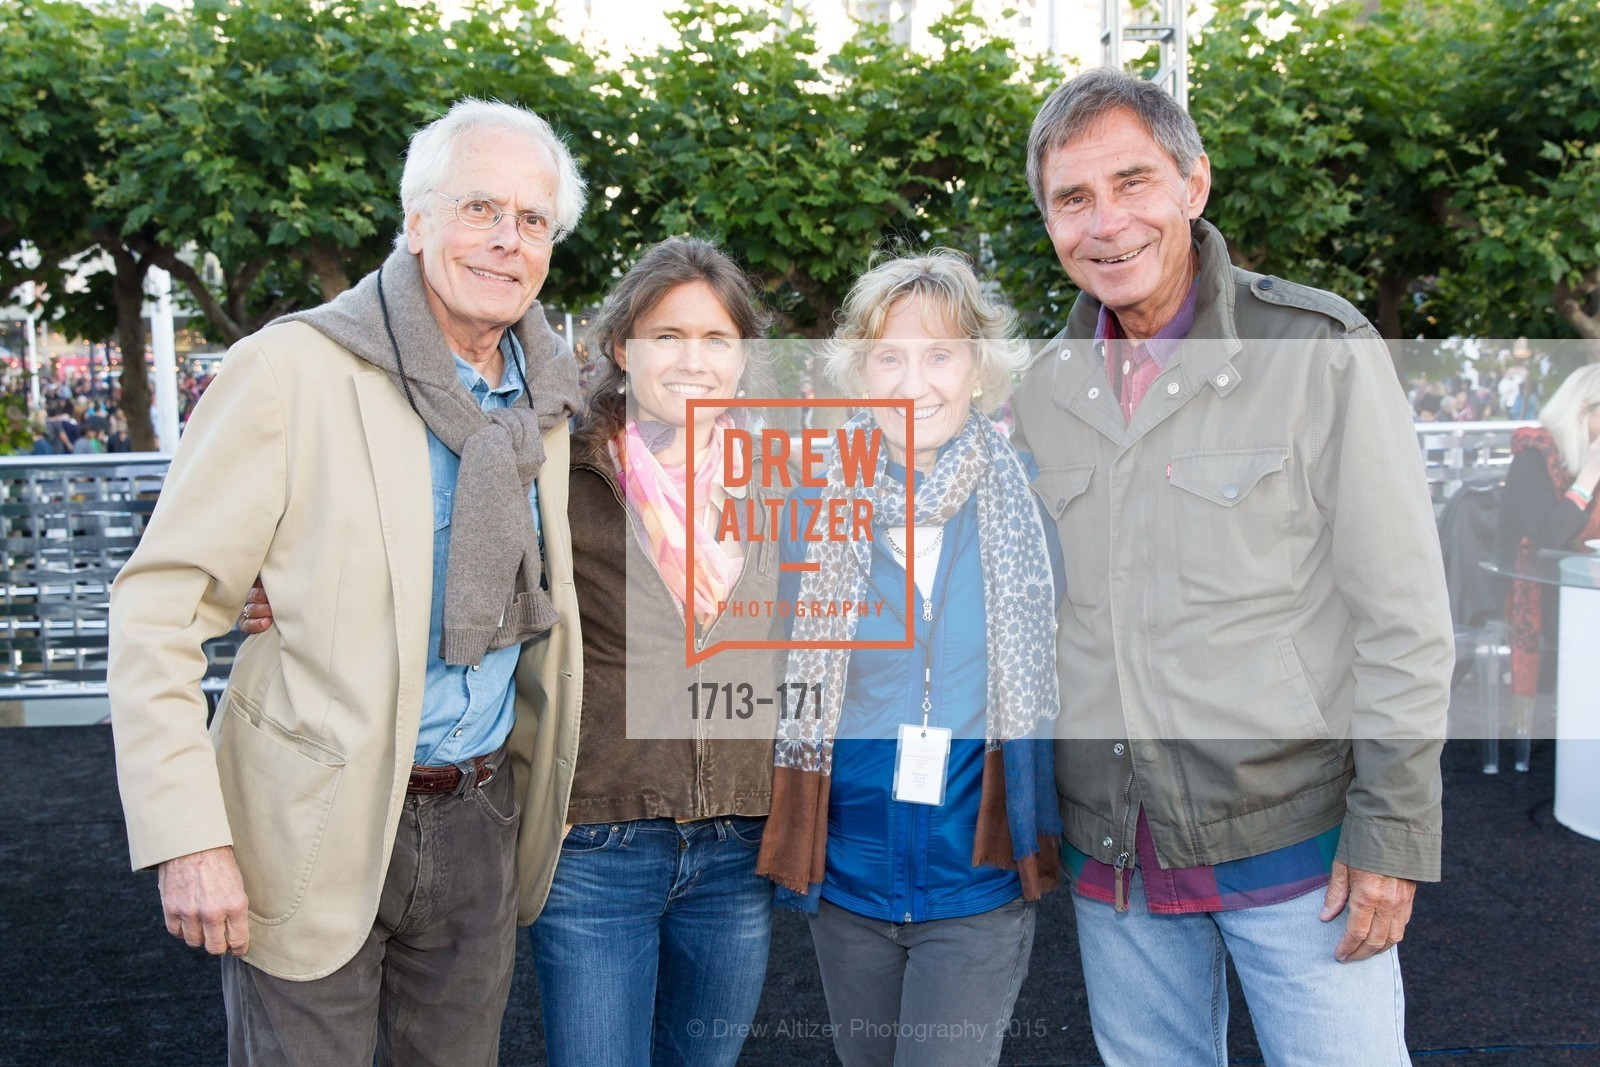 Joachim Bechtle, Nancy Bechtle, Heidi Claire, Ron Thomason, San Francisco City Hall Centennial Celebration, Civic Center Plaza, June 18th, 2015,Drew Altizer, Drew Altizer Photography, full-service agency, private events, San Francisco photographer, photographer california